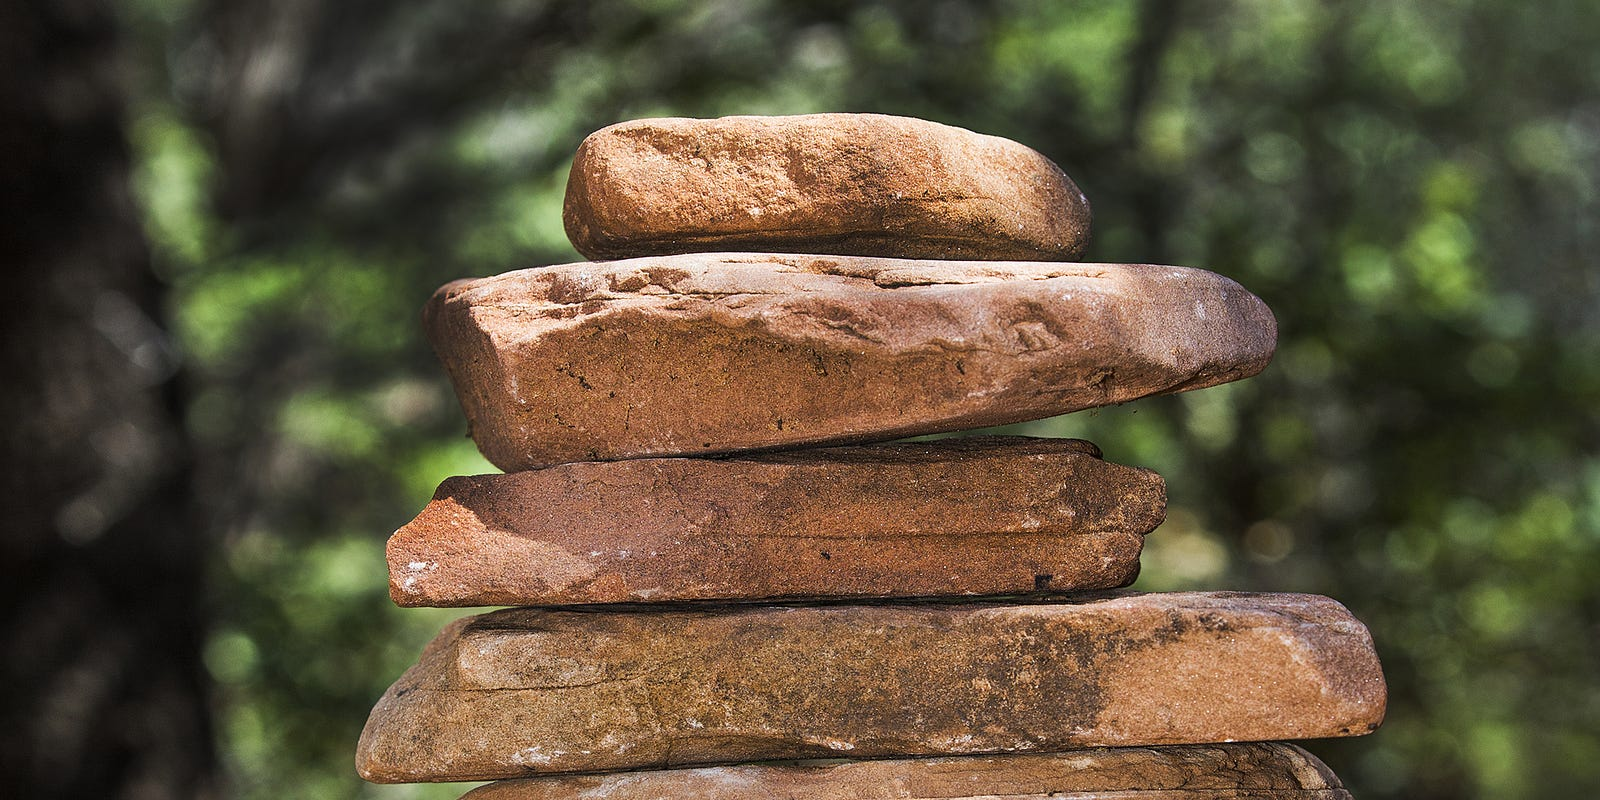 Stacks Of Stones In The Woods